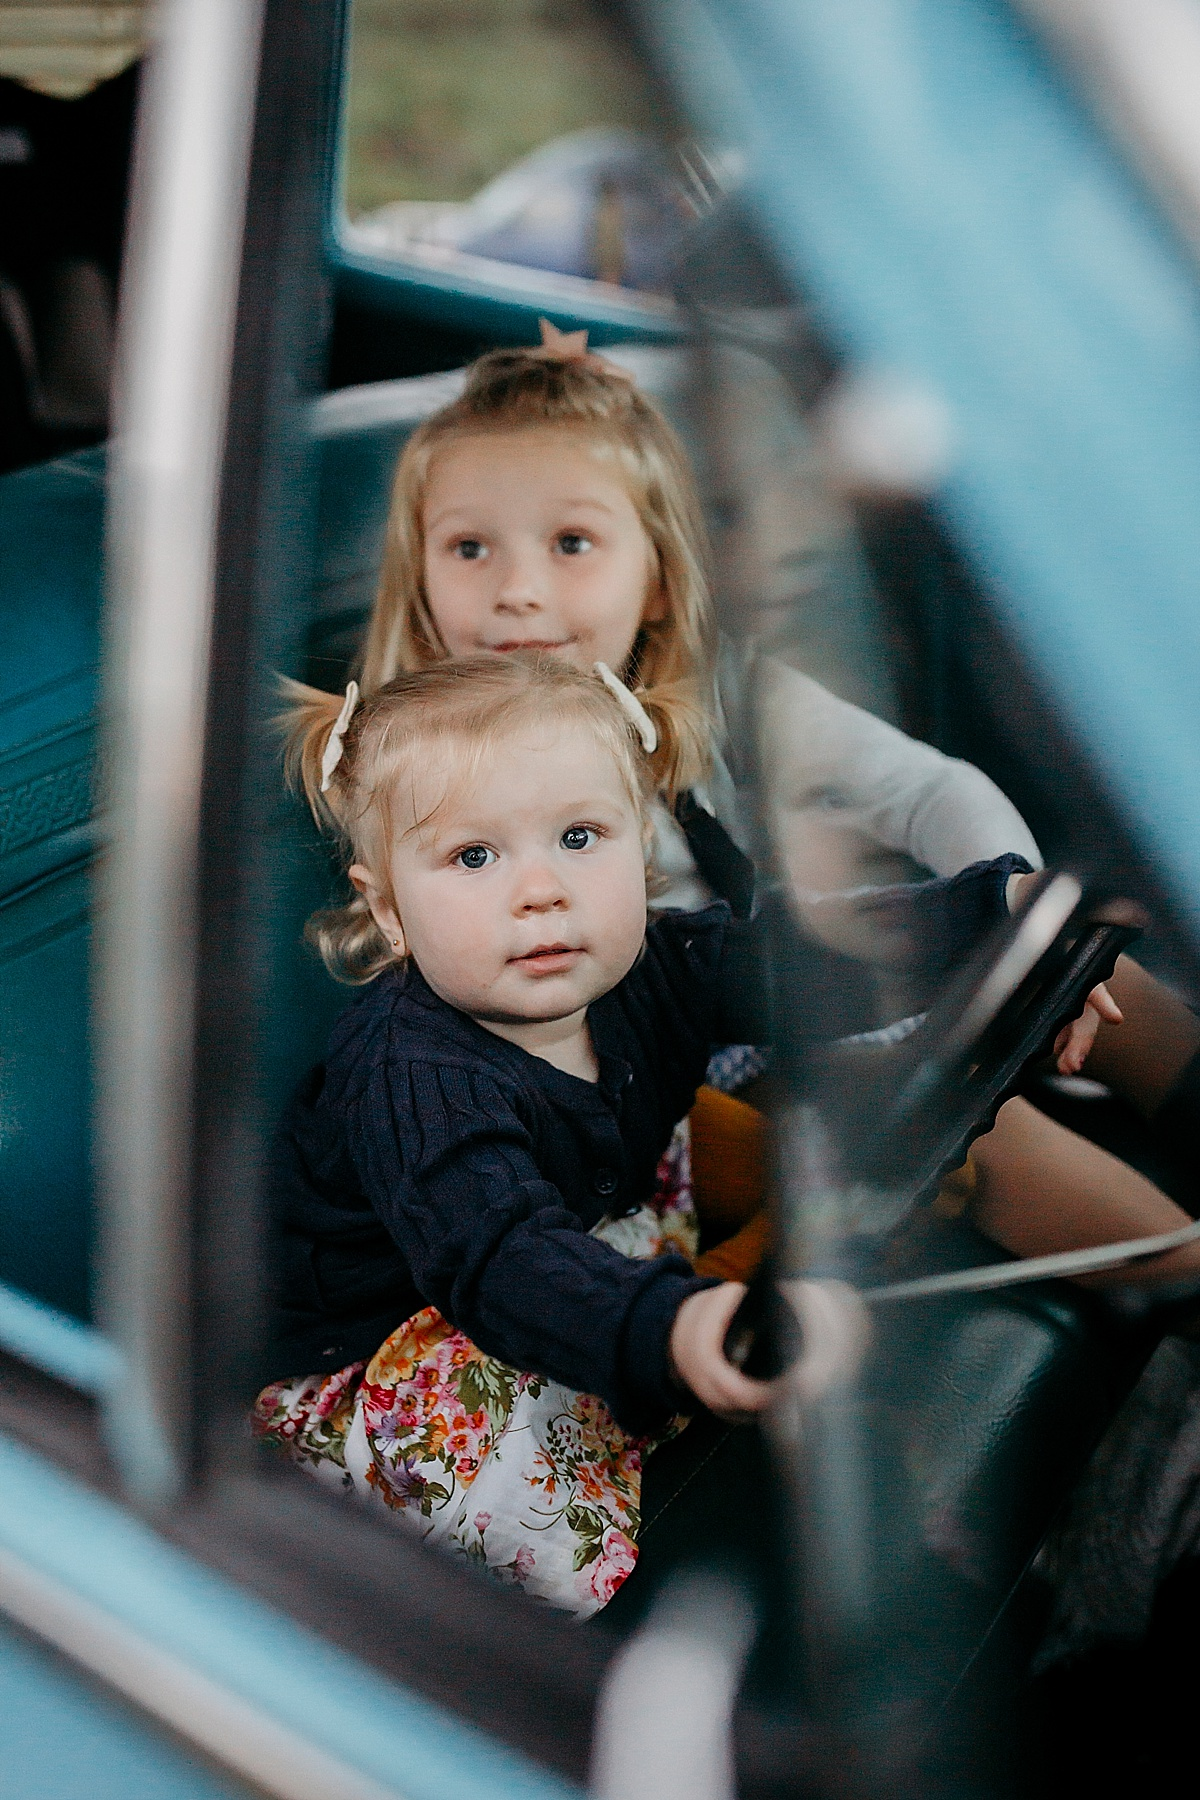 Two girls pretending to drive parents car